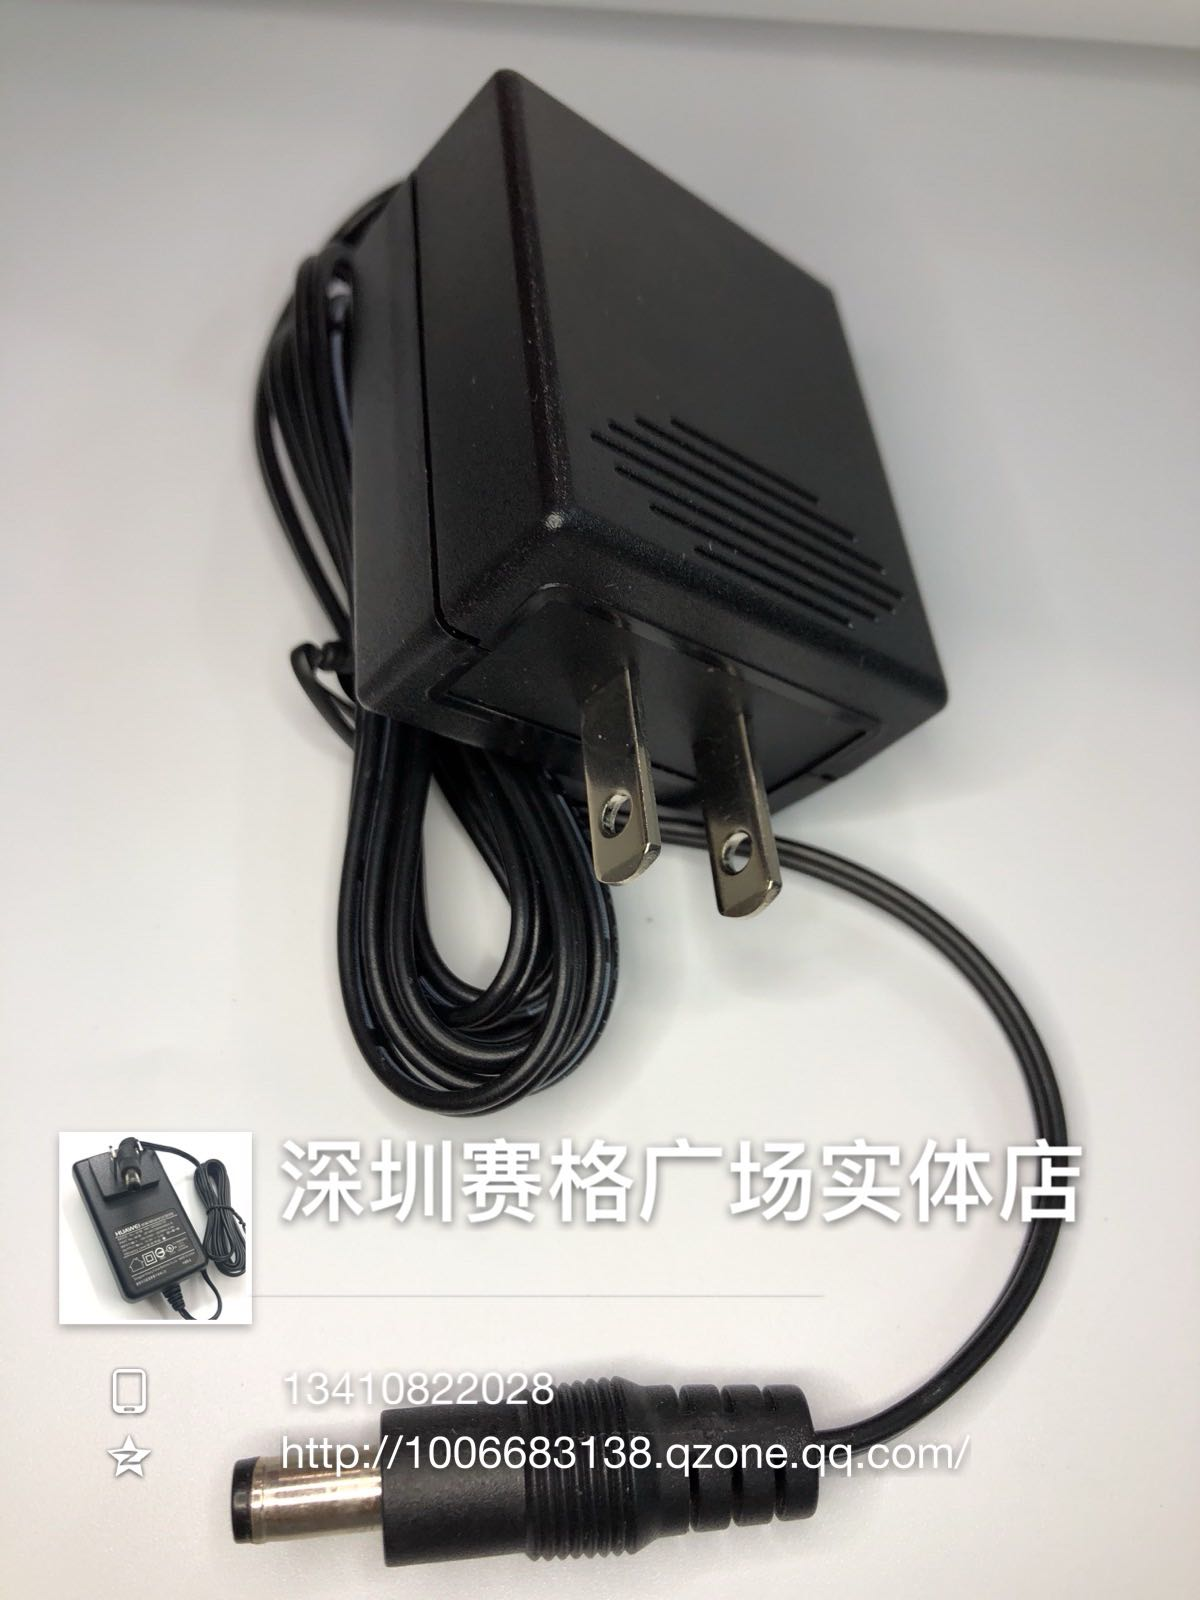 Di Nuovo, Originale UMEC Taiwan huanglong 5v2a adattatore Router Set Top Box PDH.